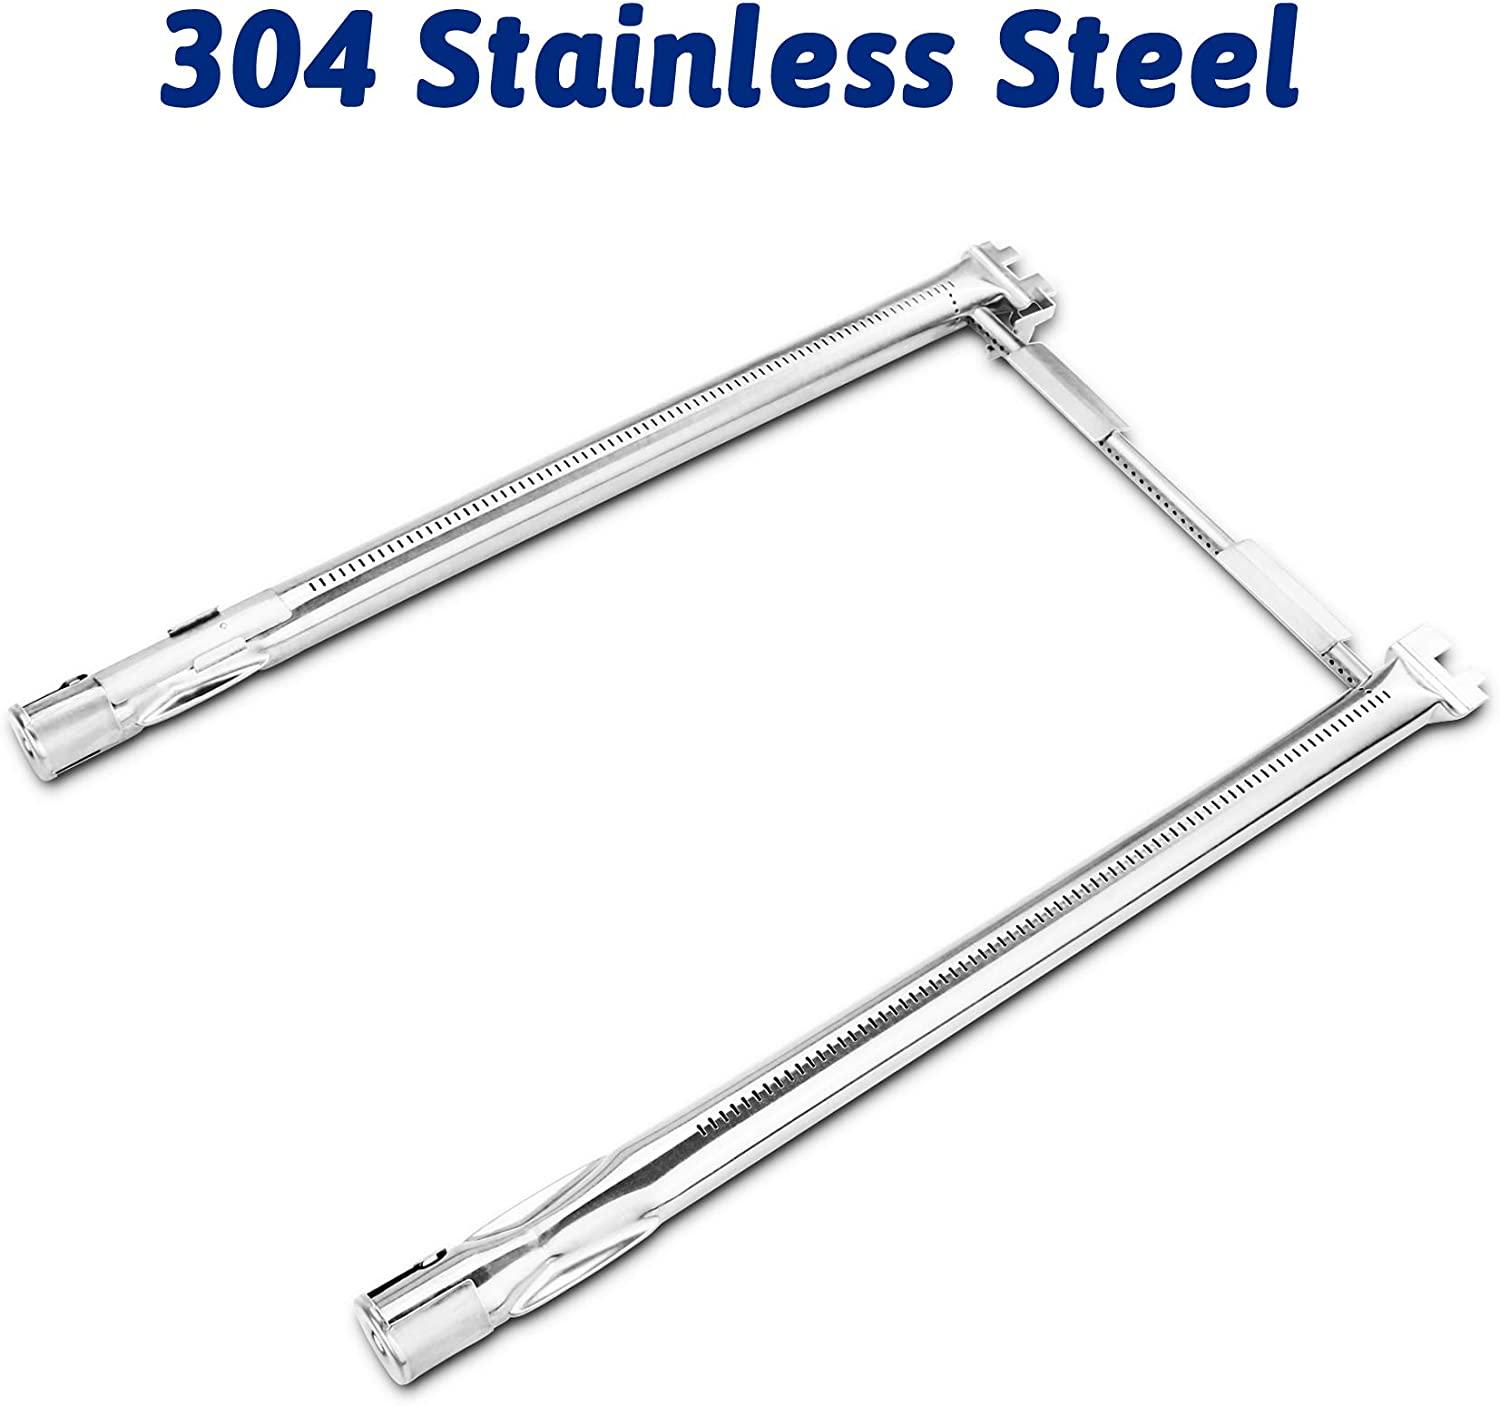 Utheer 69785 Grill Burner Tube 18 Inches for Weber Spirit 200, Spirit E210 S210 E220 S220 Series with Up Front Controls (2013 Model Years and Newer), 304 Stainless Steel